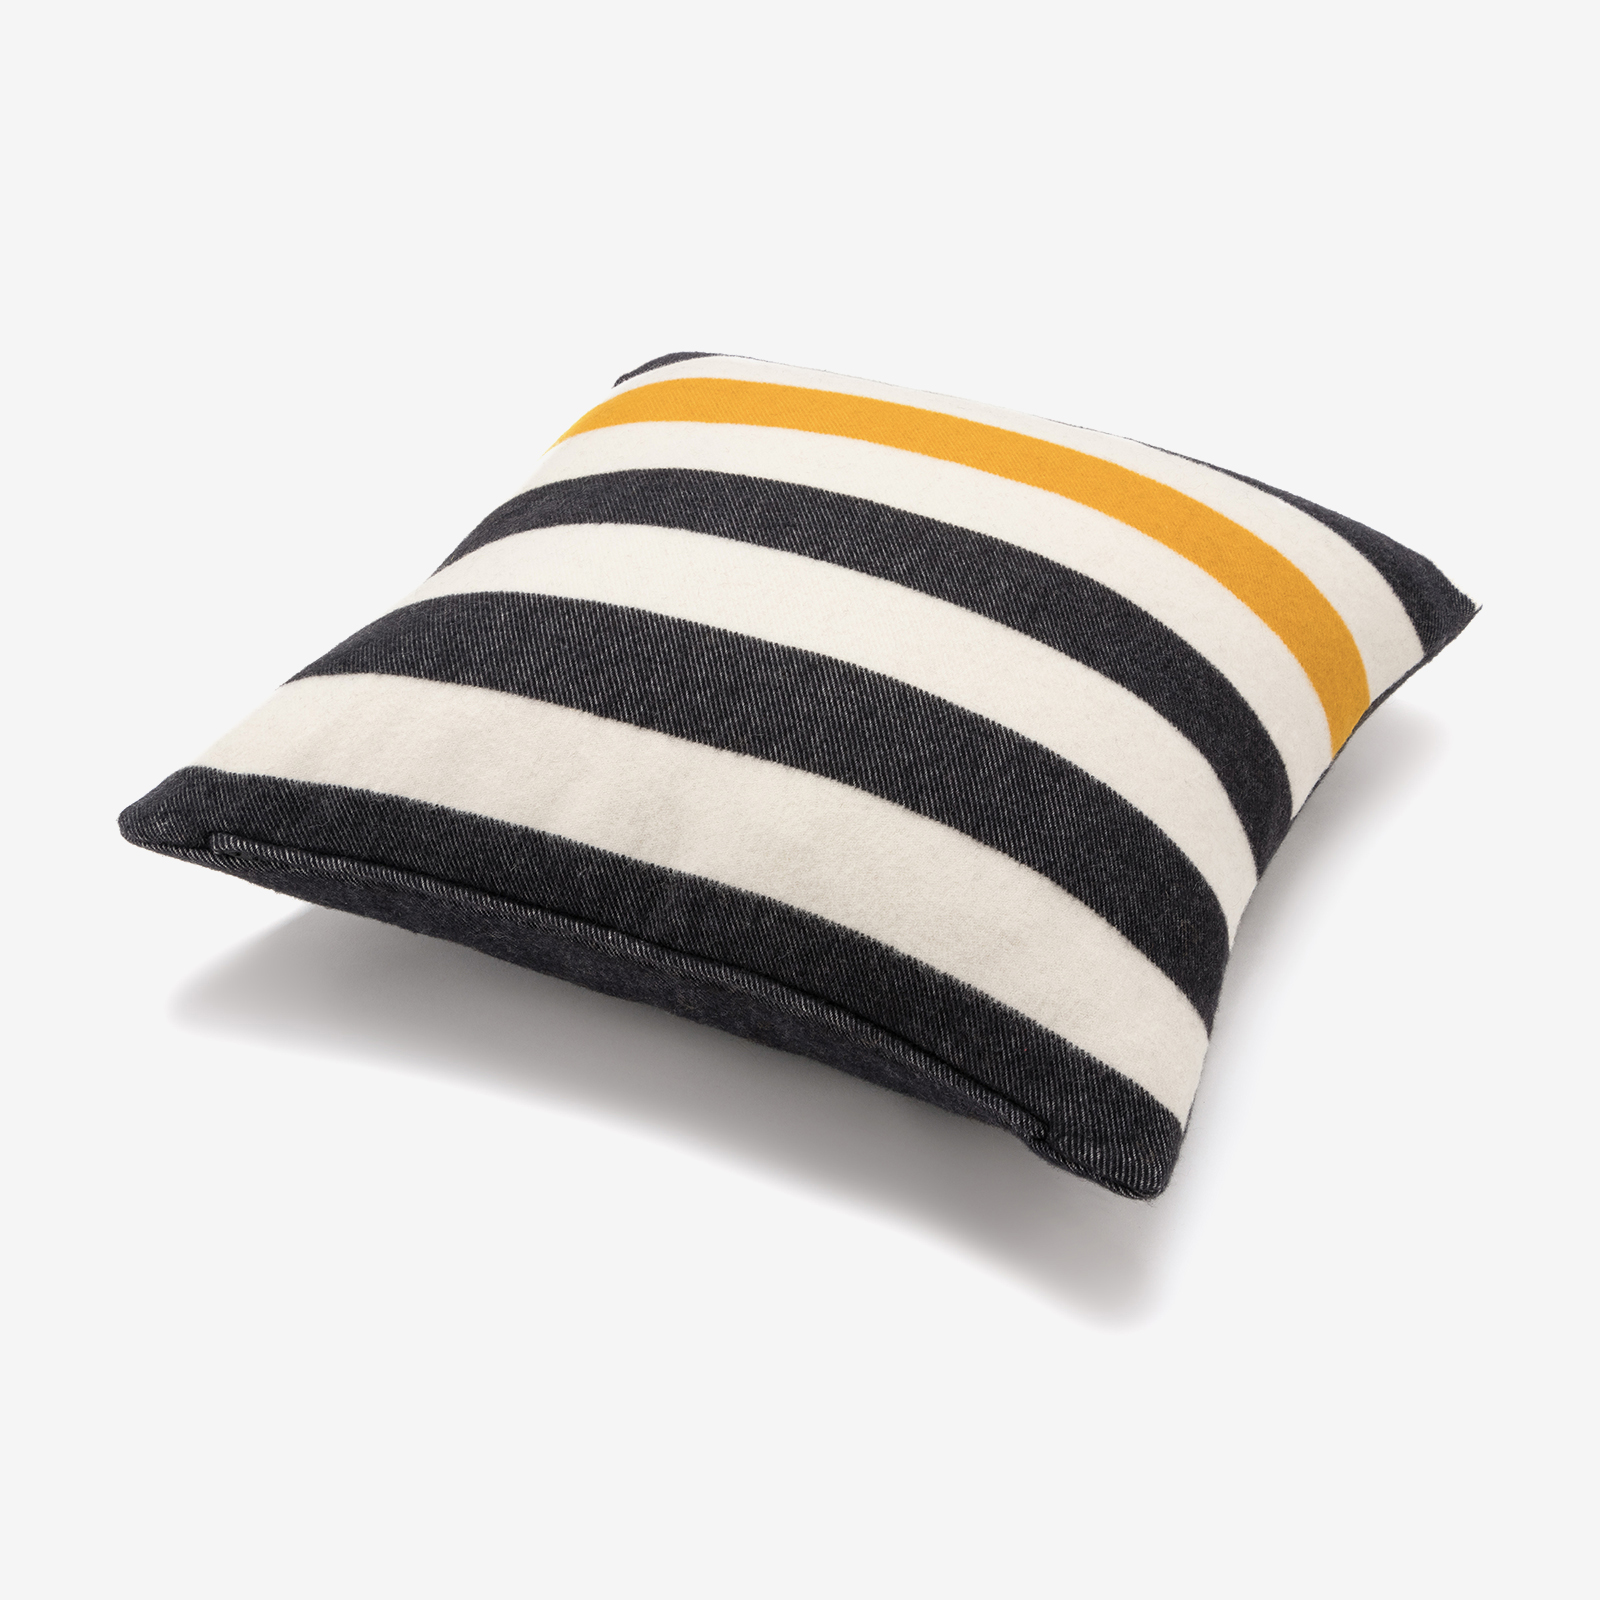 Pillow product photography